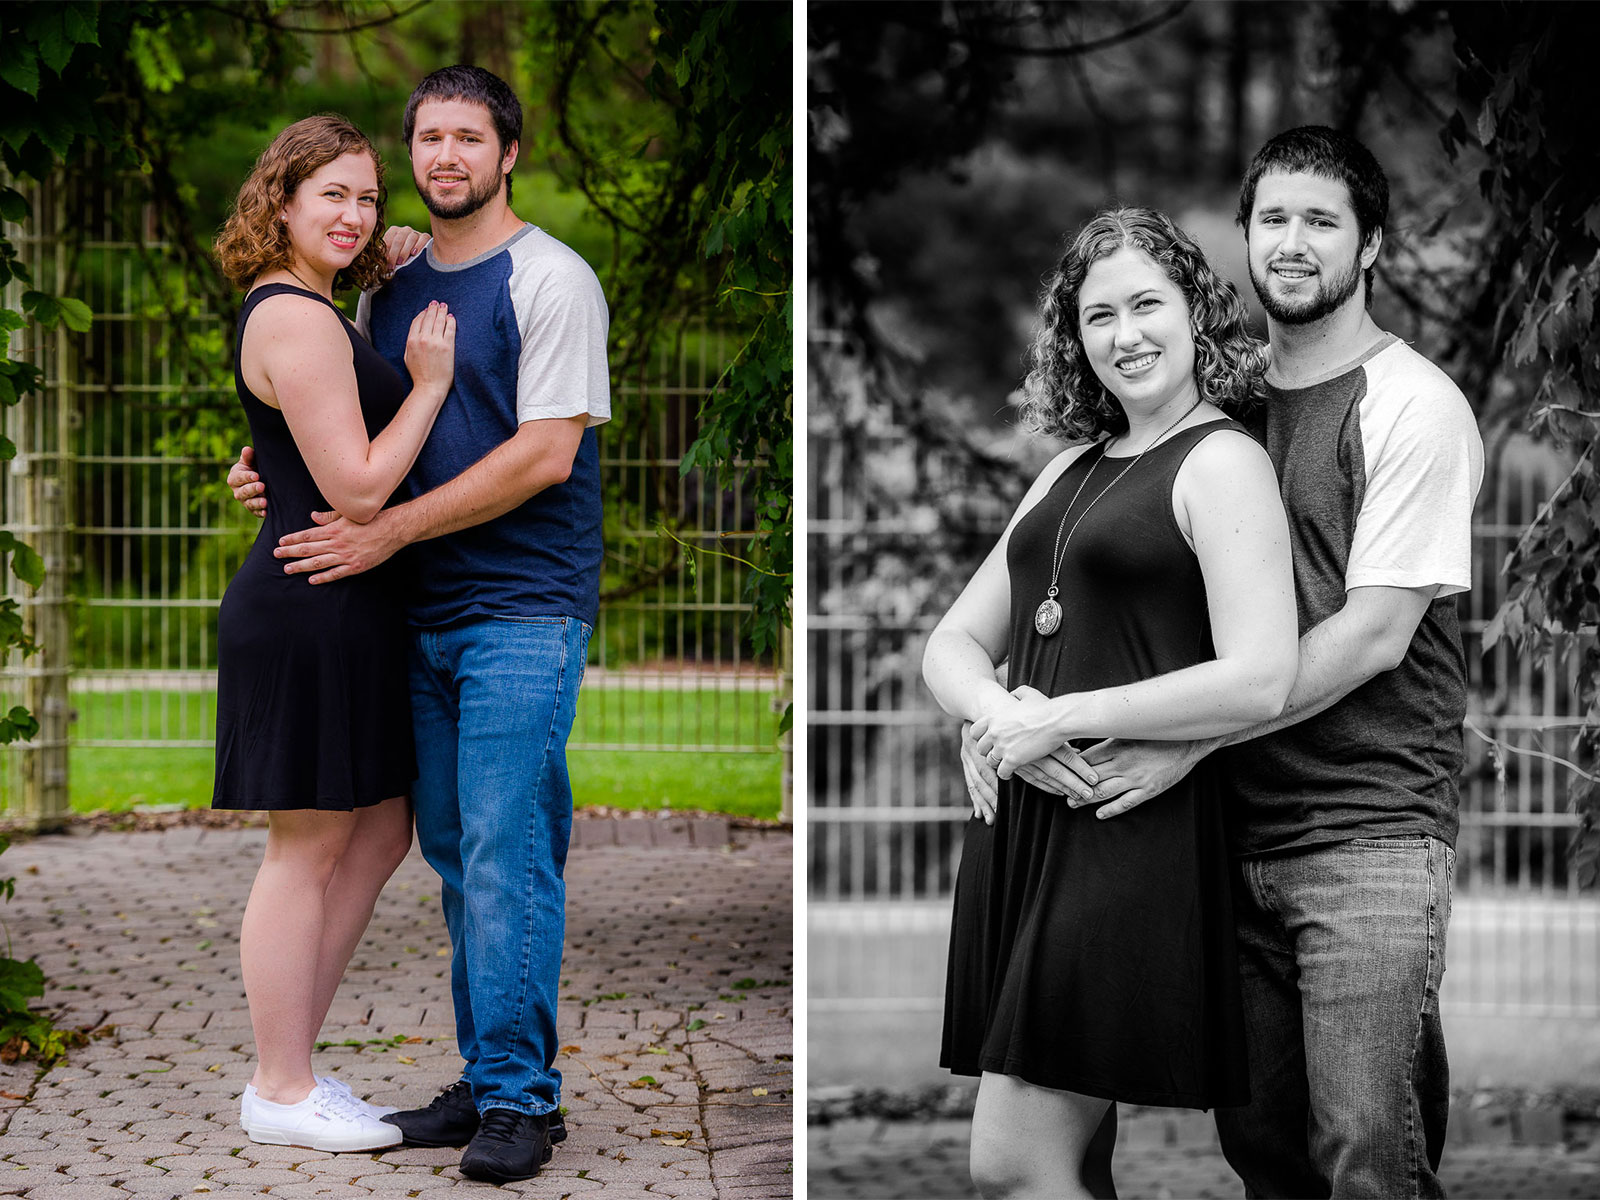 Eric_and_Christy_Photography_Blog_Engagement_Andrea_Clint-15-16